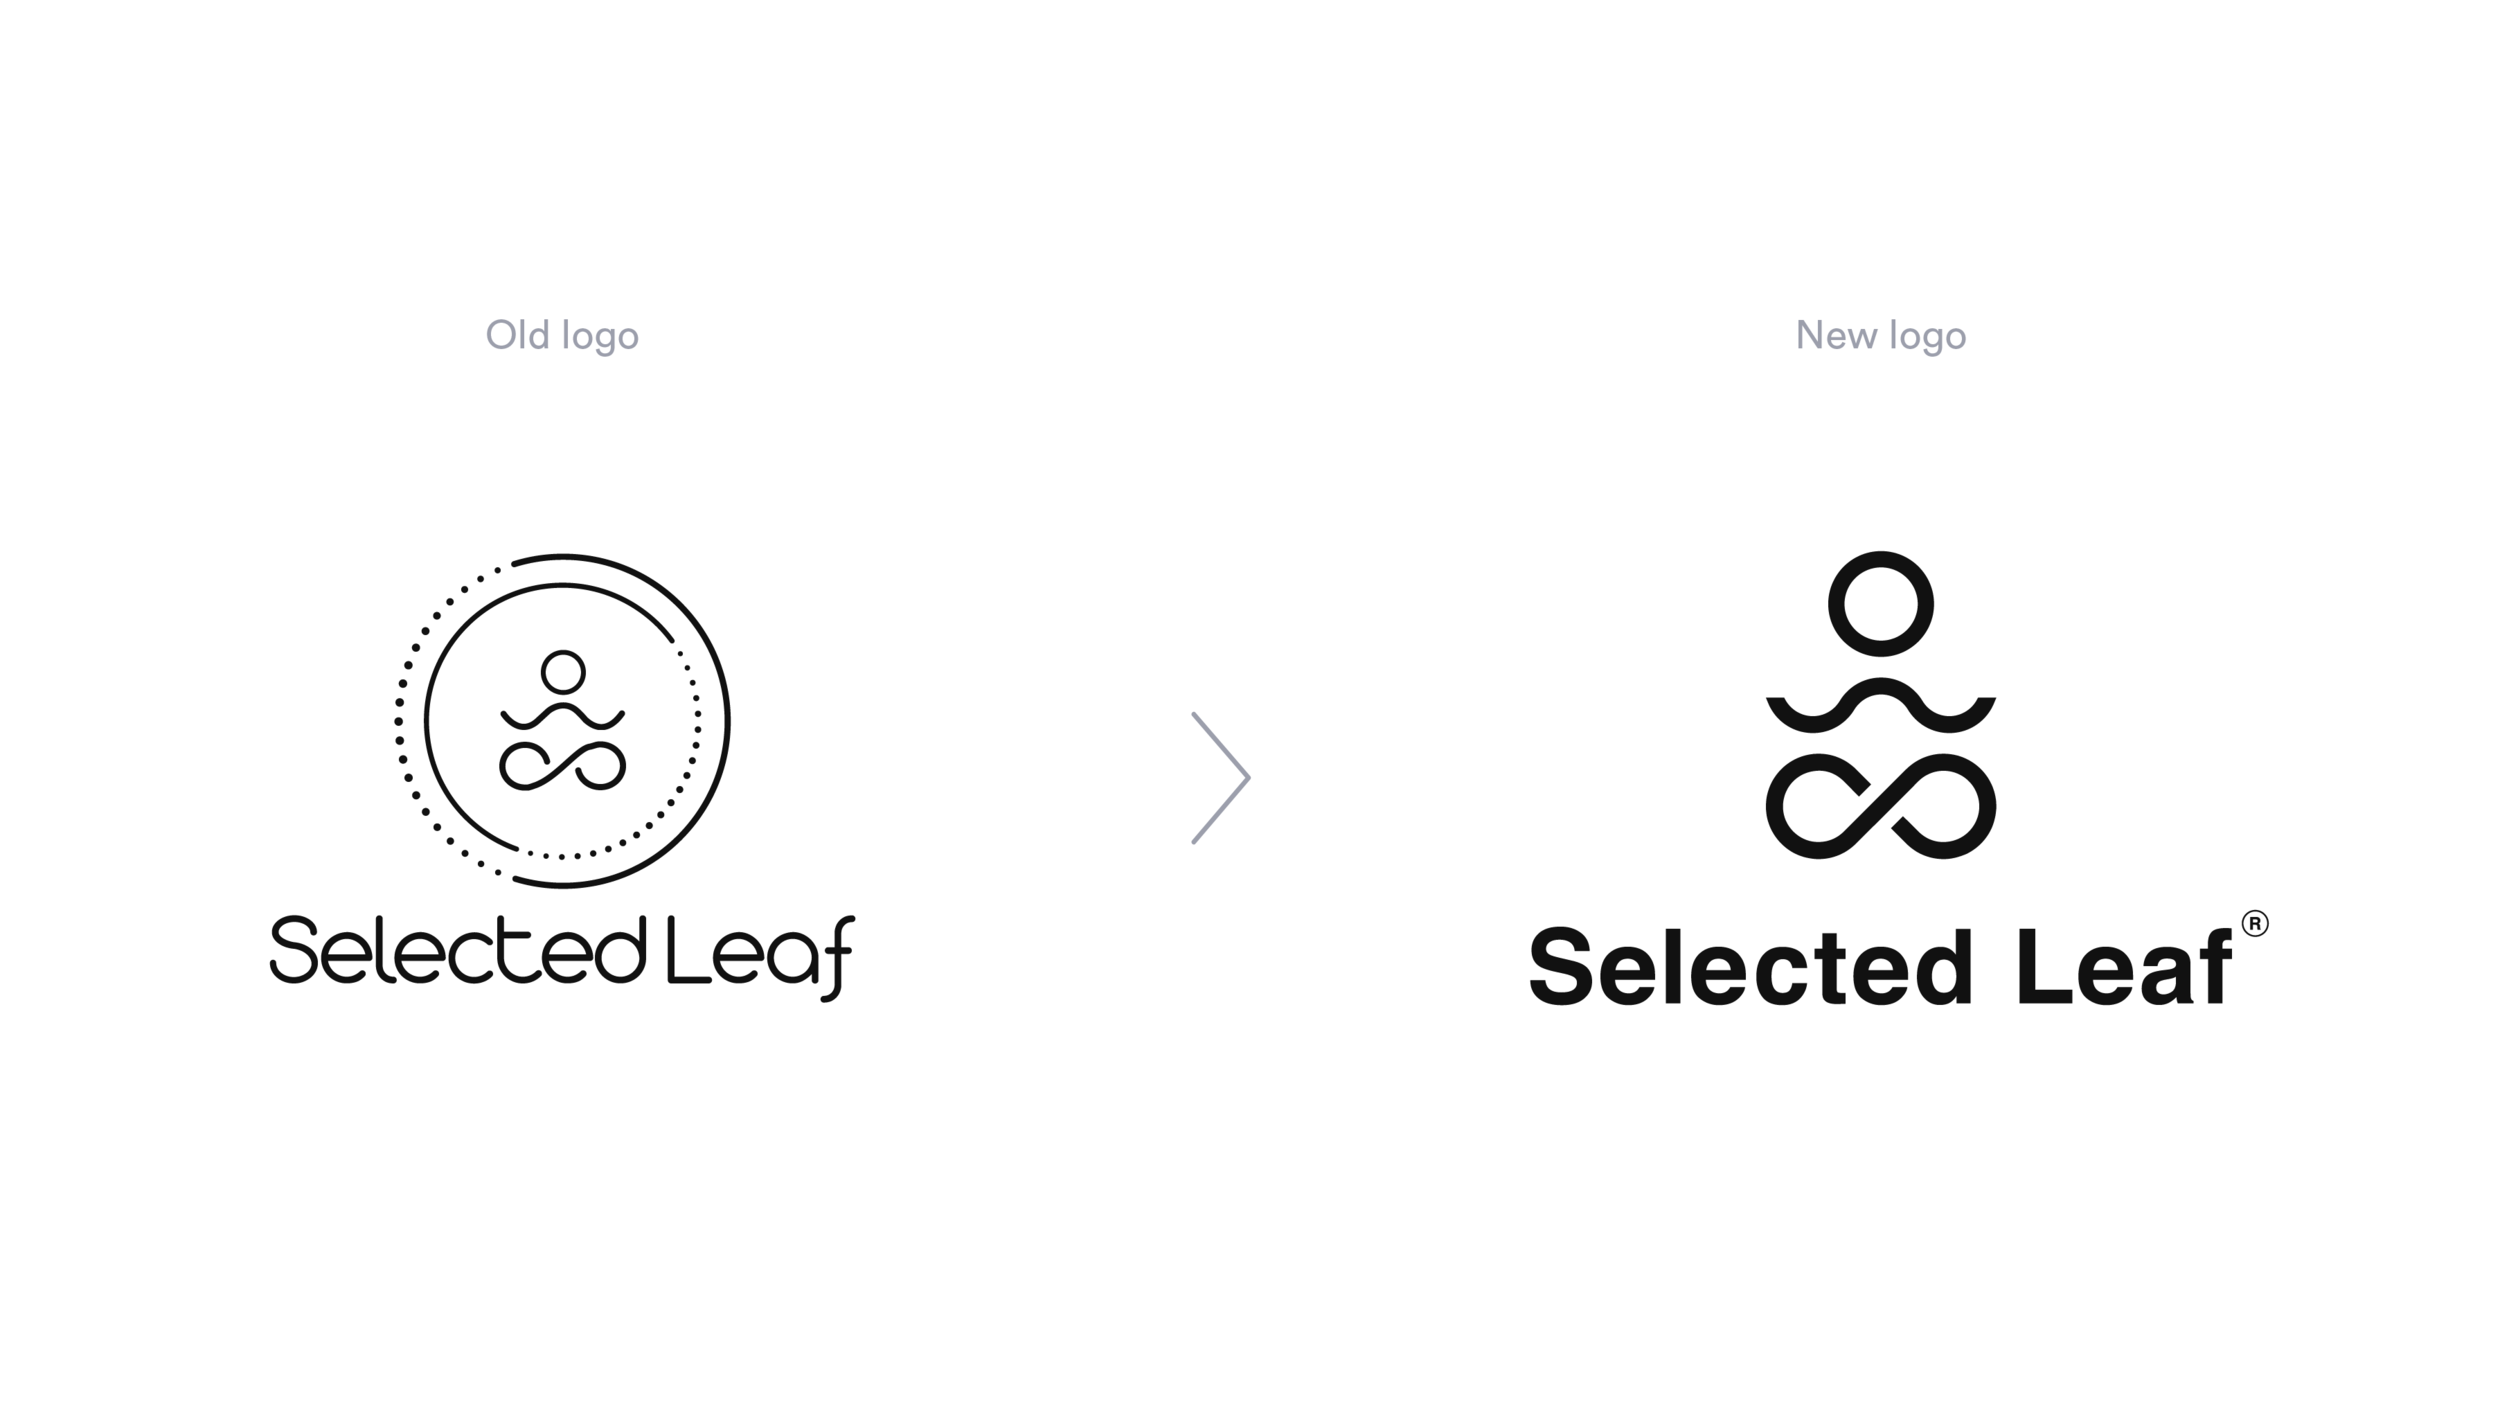 selected_leaf_before_after_logo.png